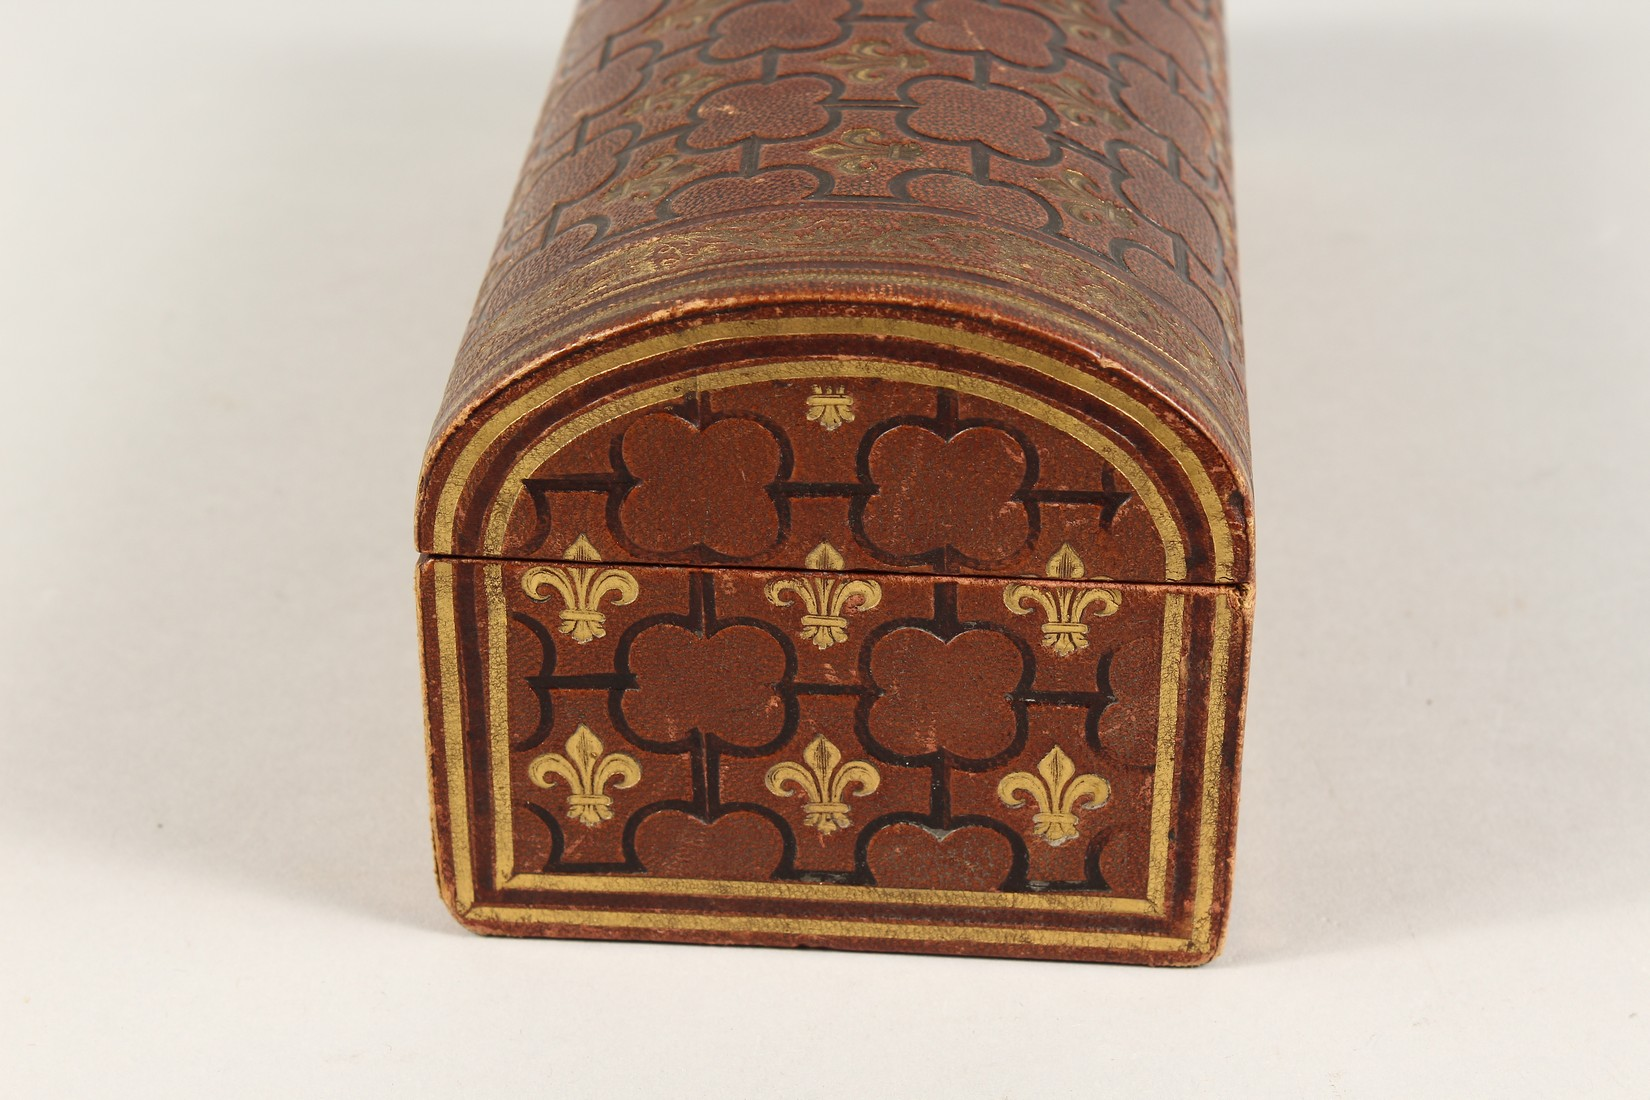 A FRENCH FLEUR D LYS DOMED LEATHER BOX 9.5ins long - Image 2 of 5